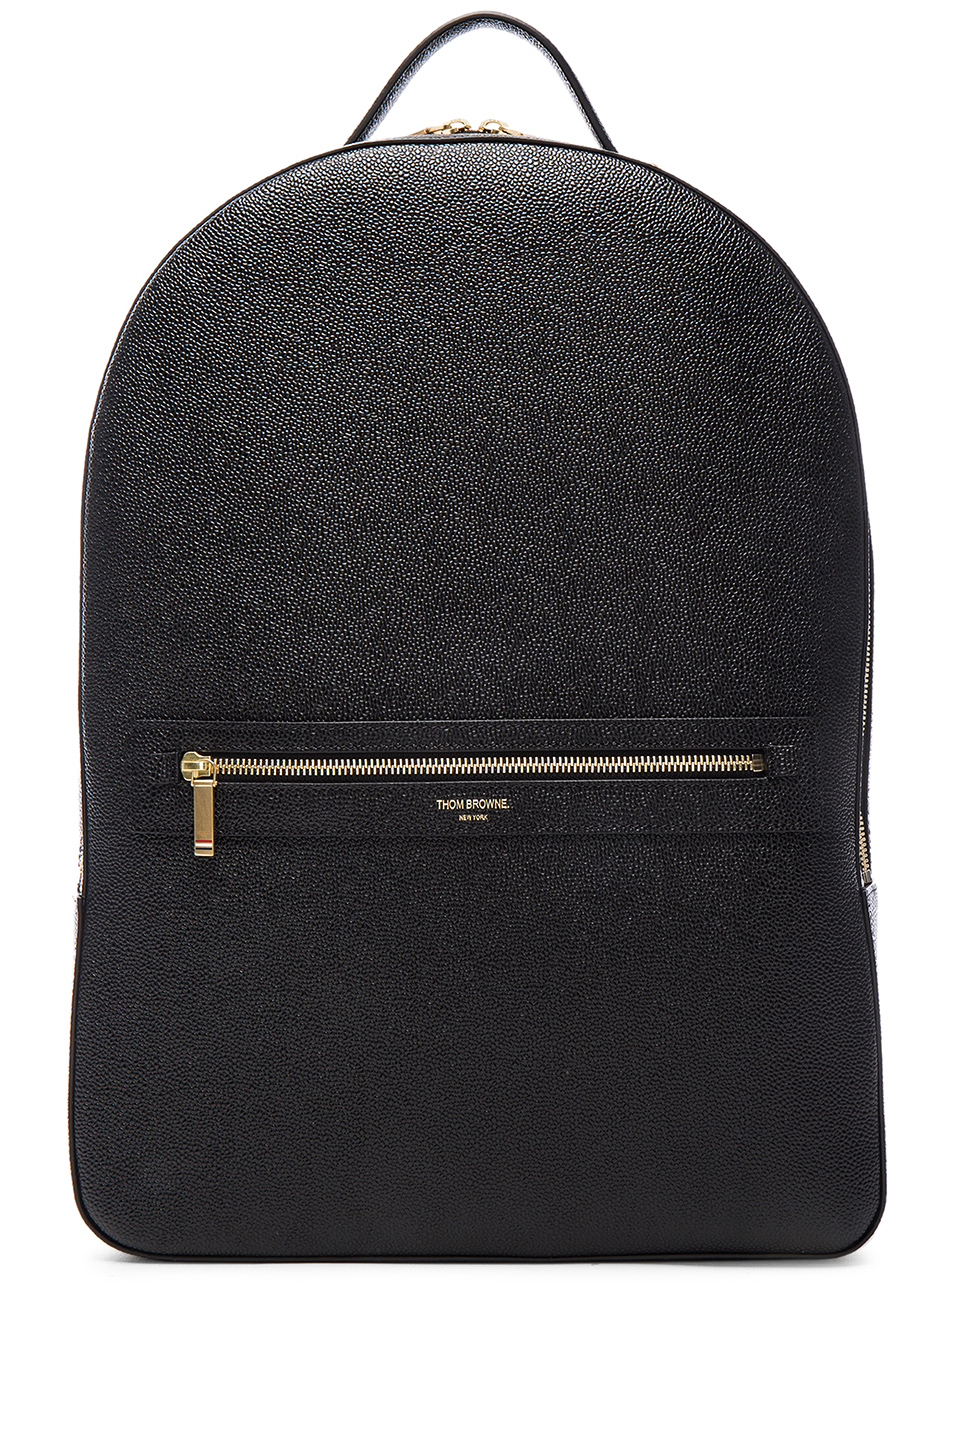 Thom Browne Backpack in Black